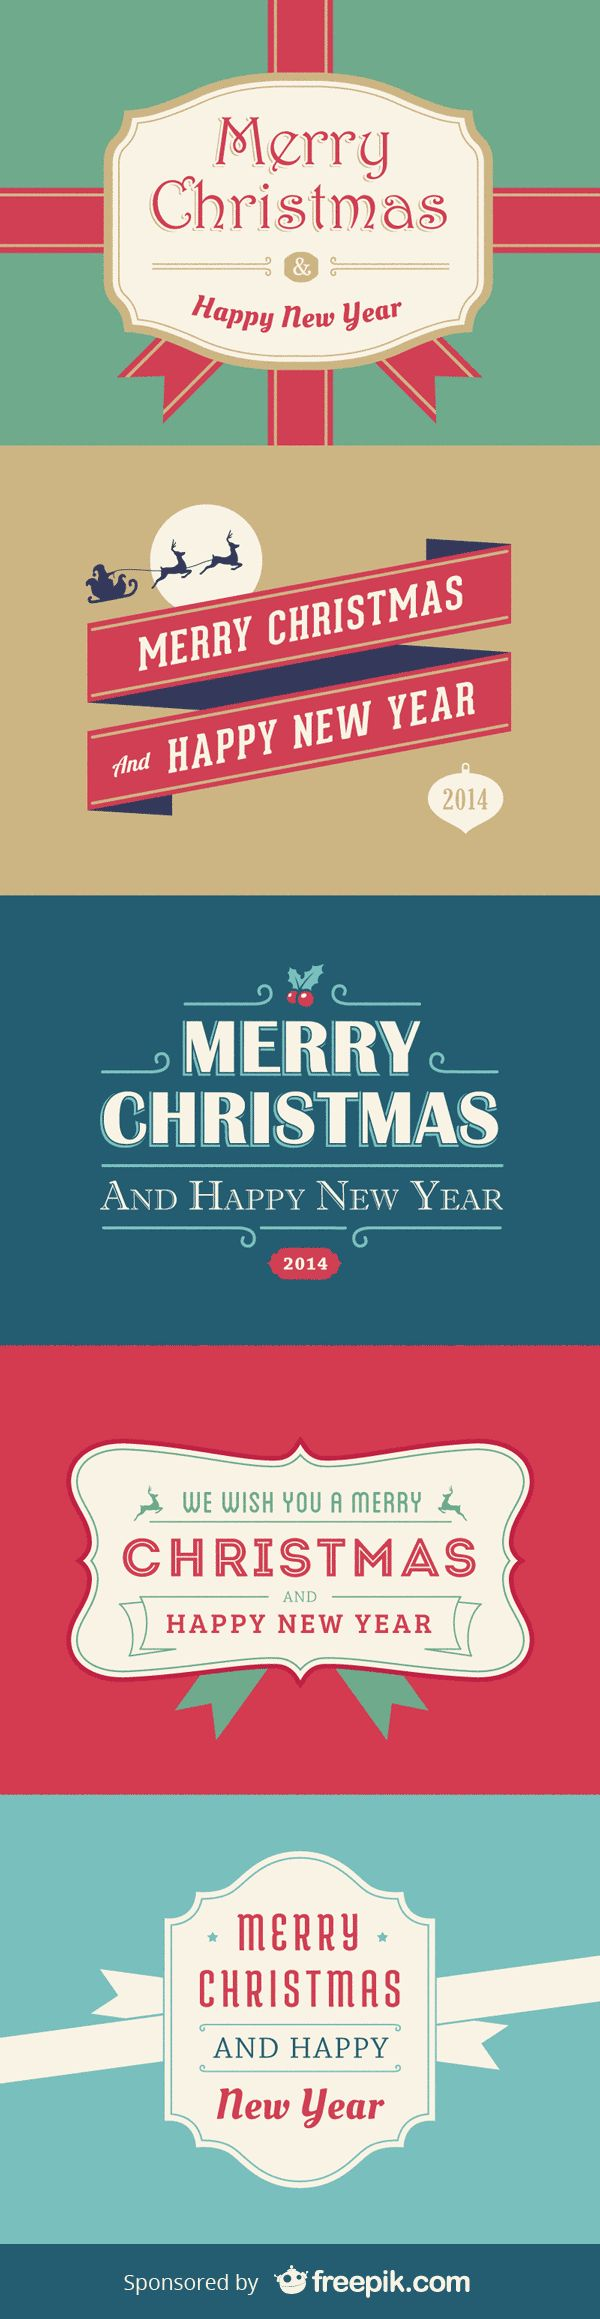 5 Christmas And New Year Cards | GraphicBurger